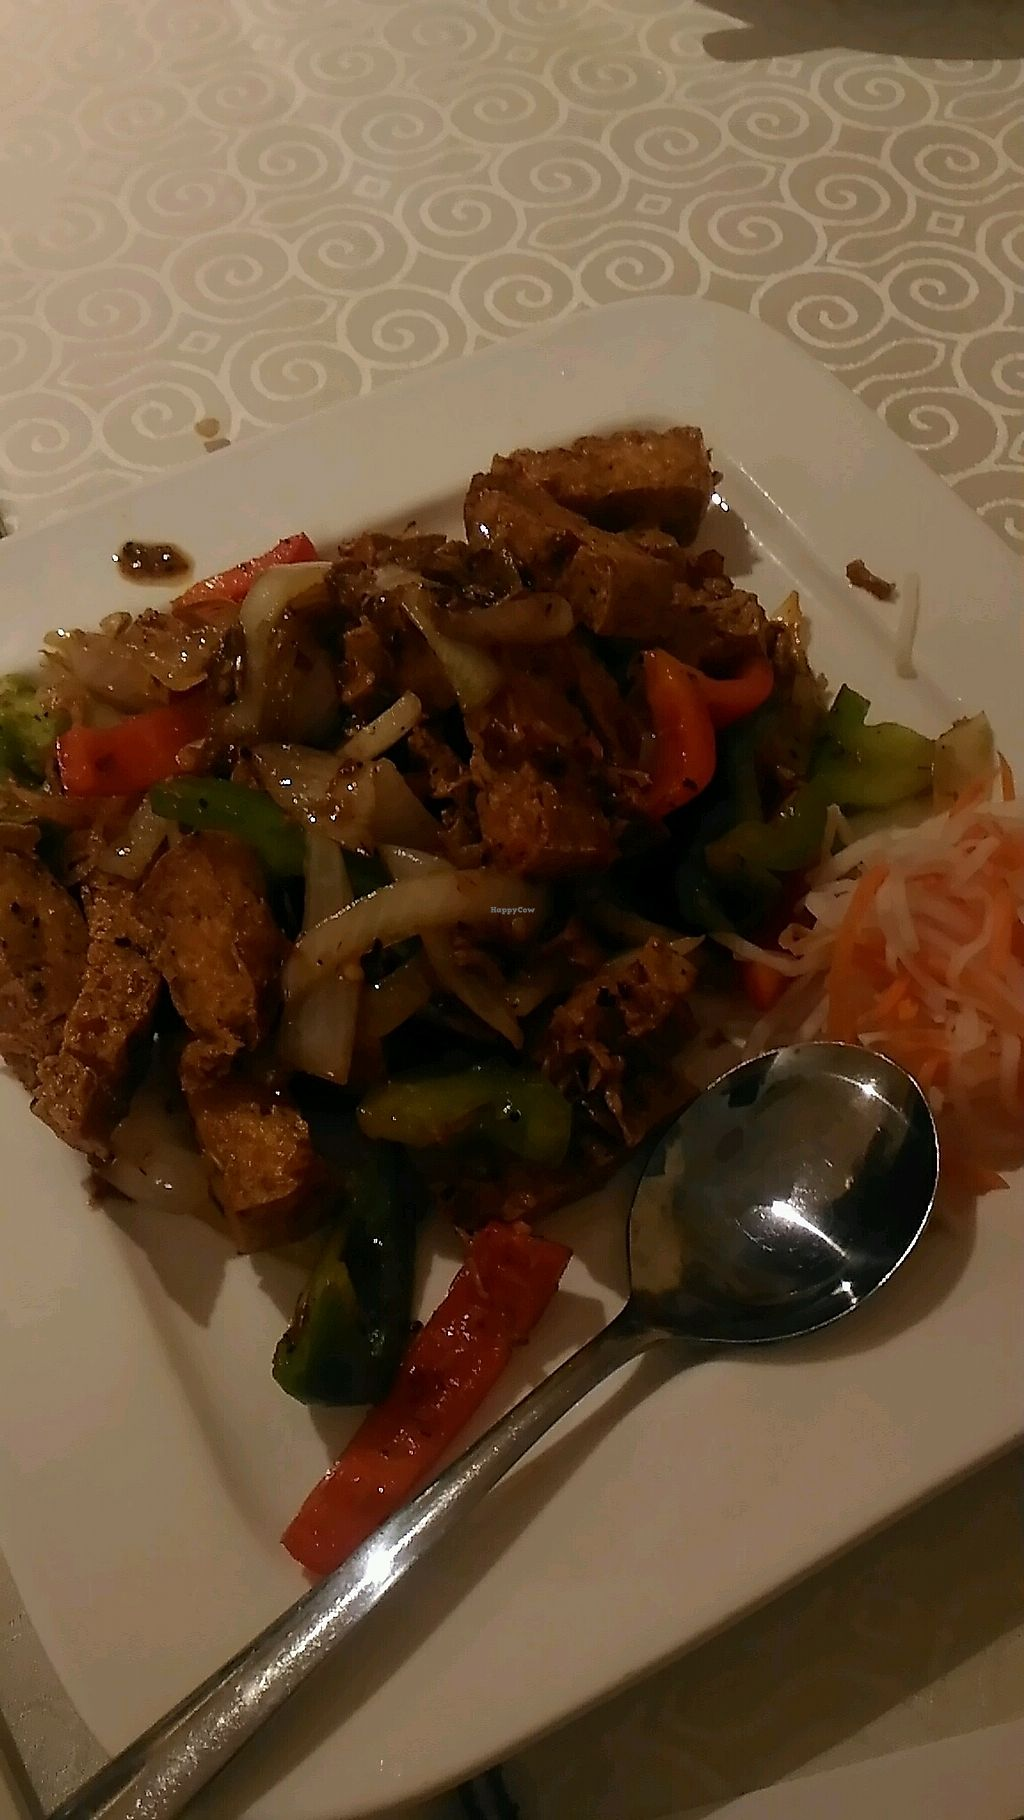 """Photo of Veggie Vietnam Restaurant  by <a href=""""/members/profile/QuothTheRaven"""">QuothTheRaven</a> <br/>crispy tofu <br/> November 2, 2017  - <a href='/contact/abuse/image/73824/321010'>Report</a>"""